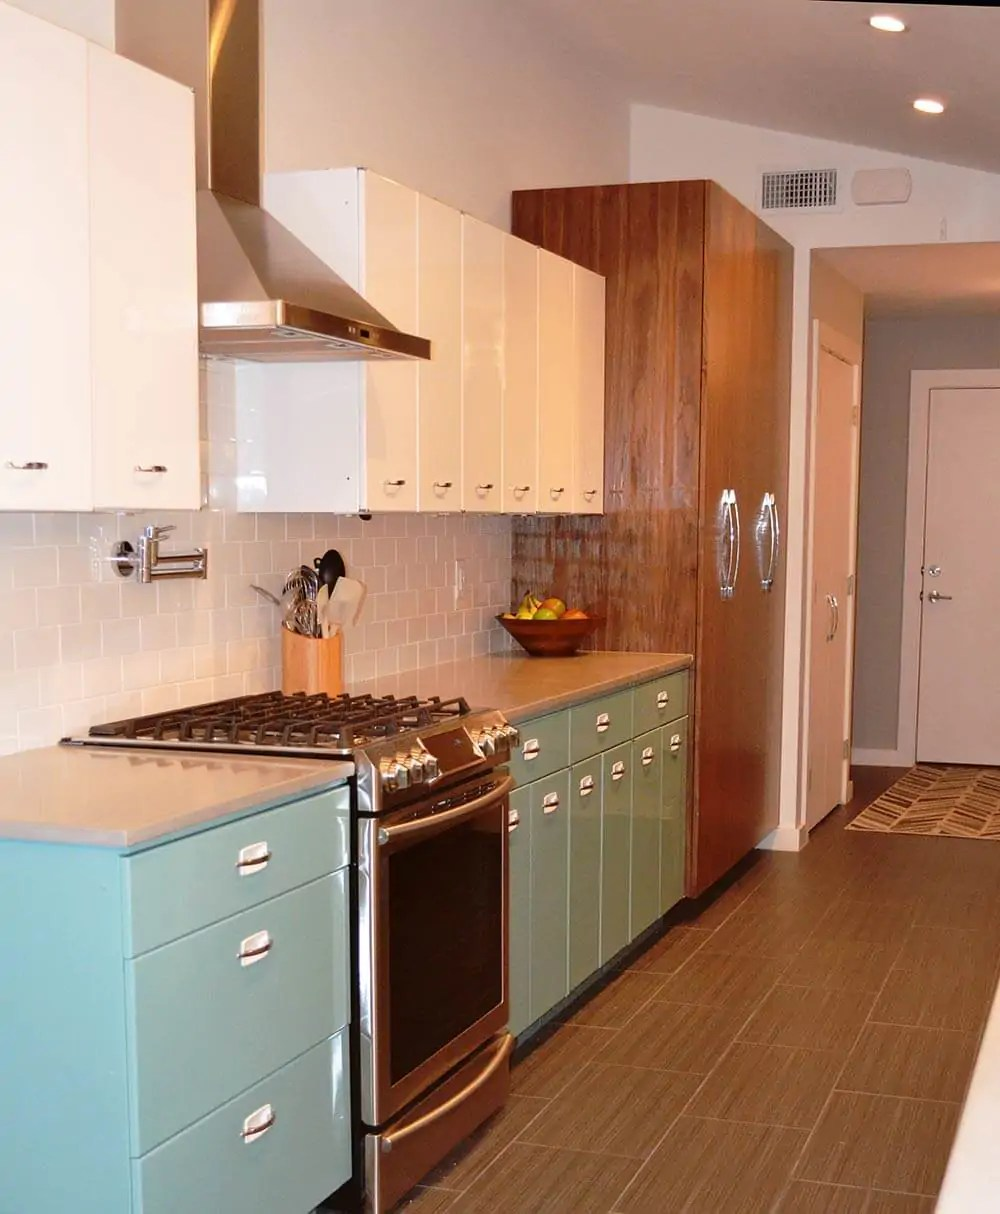 metal kitchen cabinet ikea faucet sam has a great experience with powder coating her vintage steel cabinets